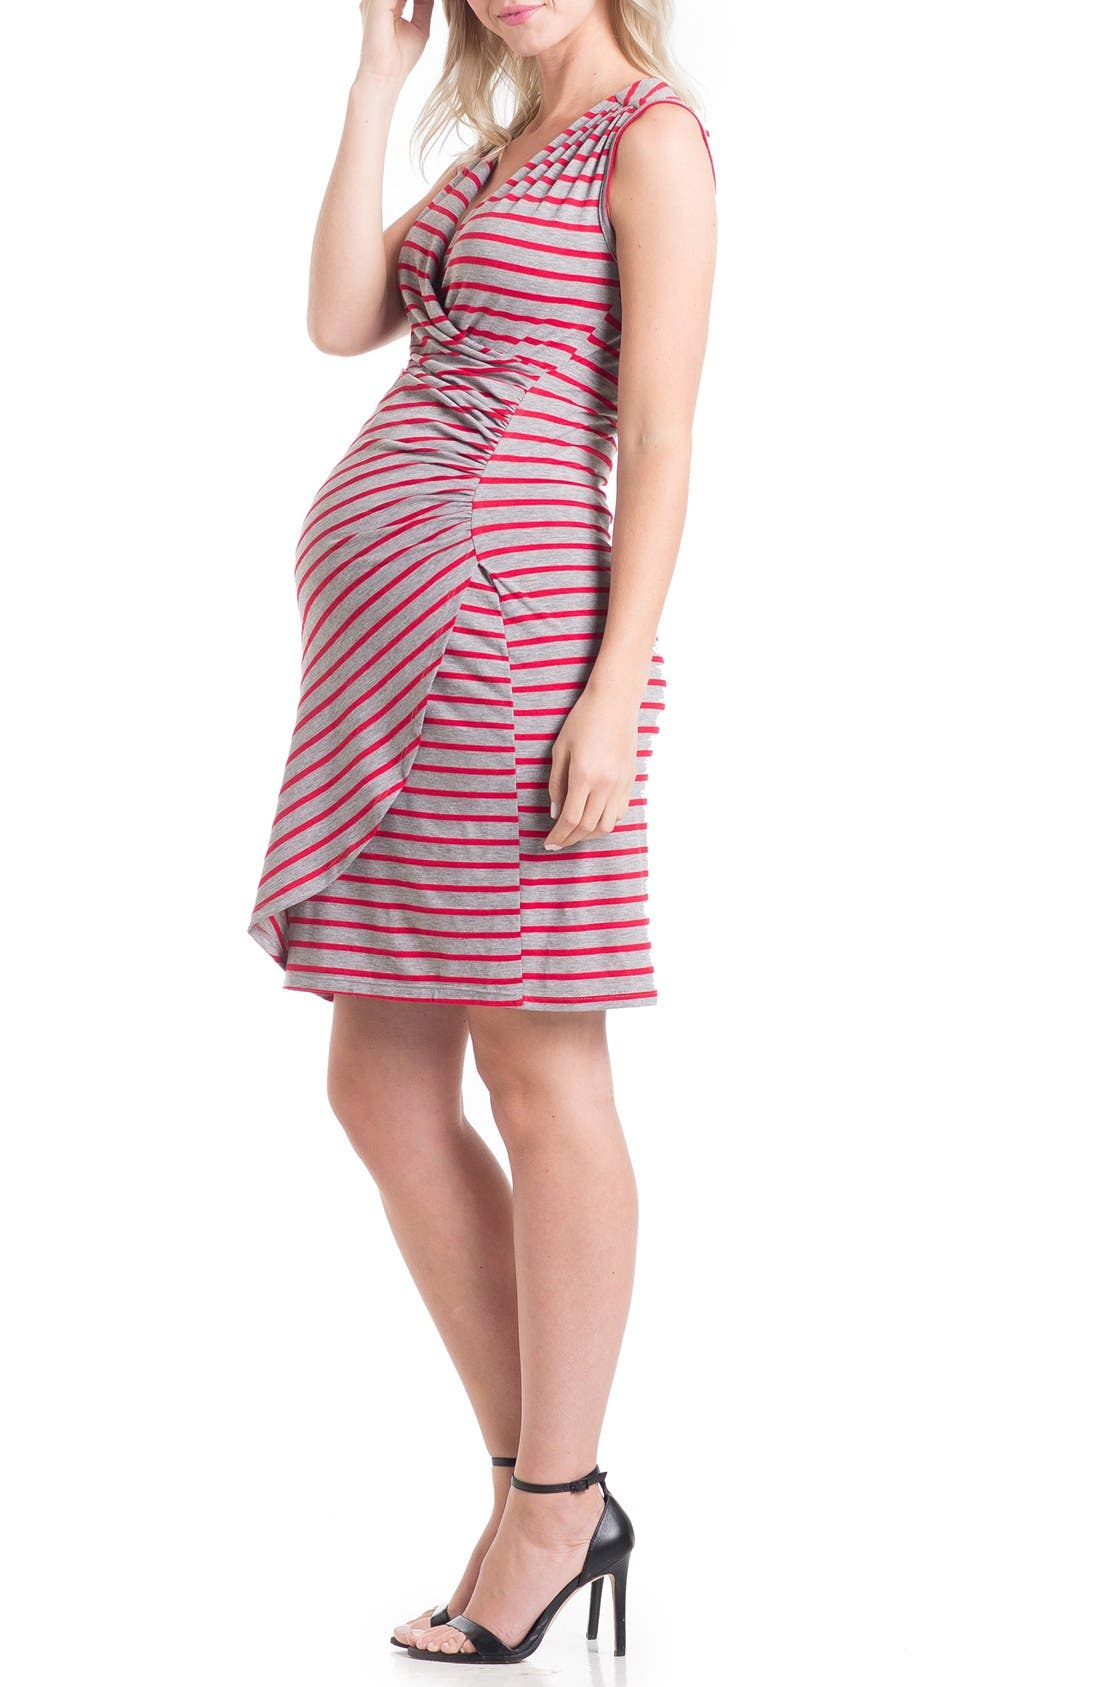 'Brynley' Surplice Maternity Dress,                             Main thumbnail 1, color,                             061